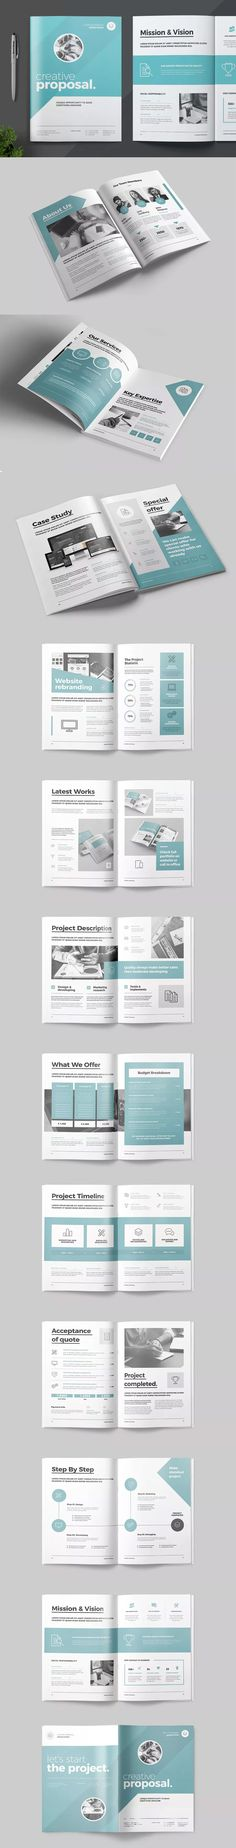 Professional Clean Proposal Templates - 22 Pages - INDD, PDF - proposal templates